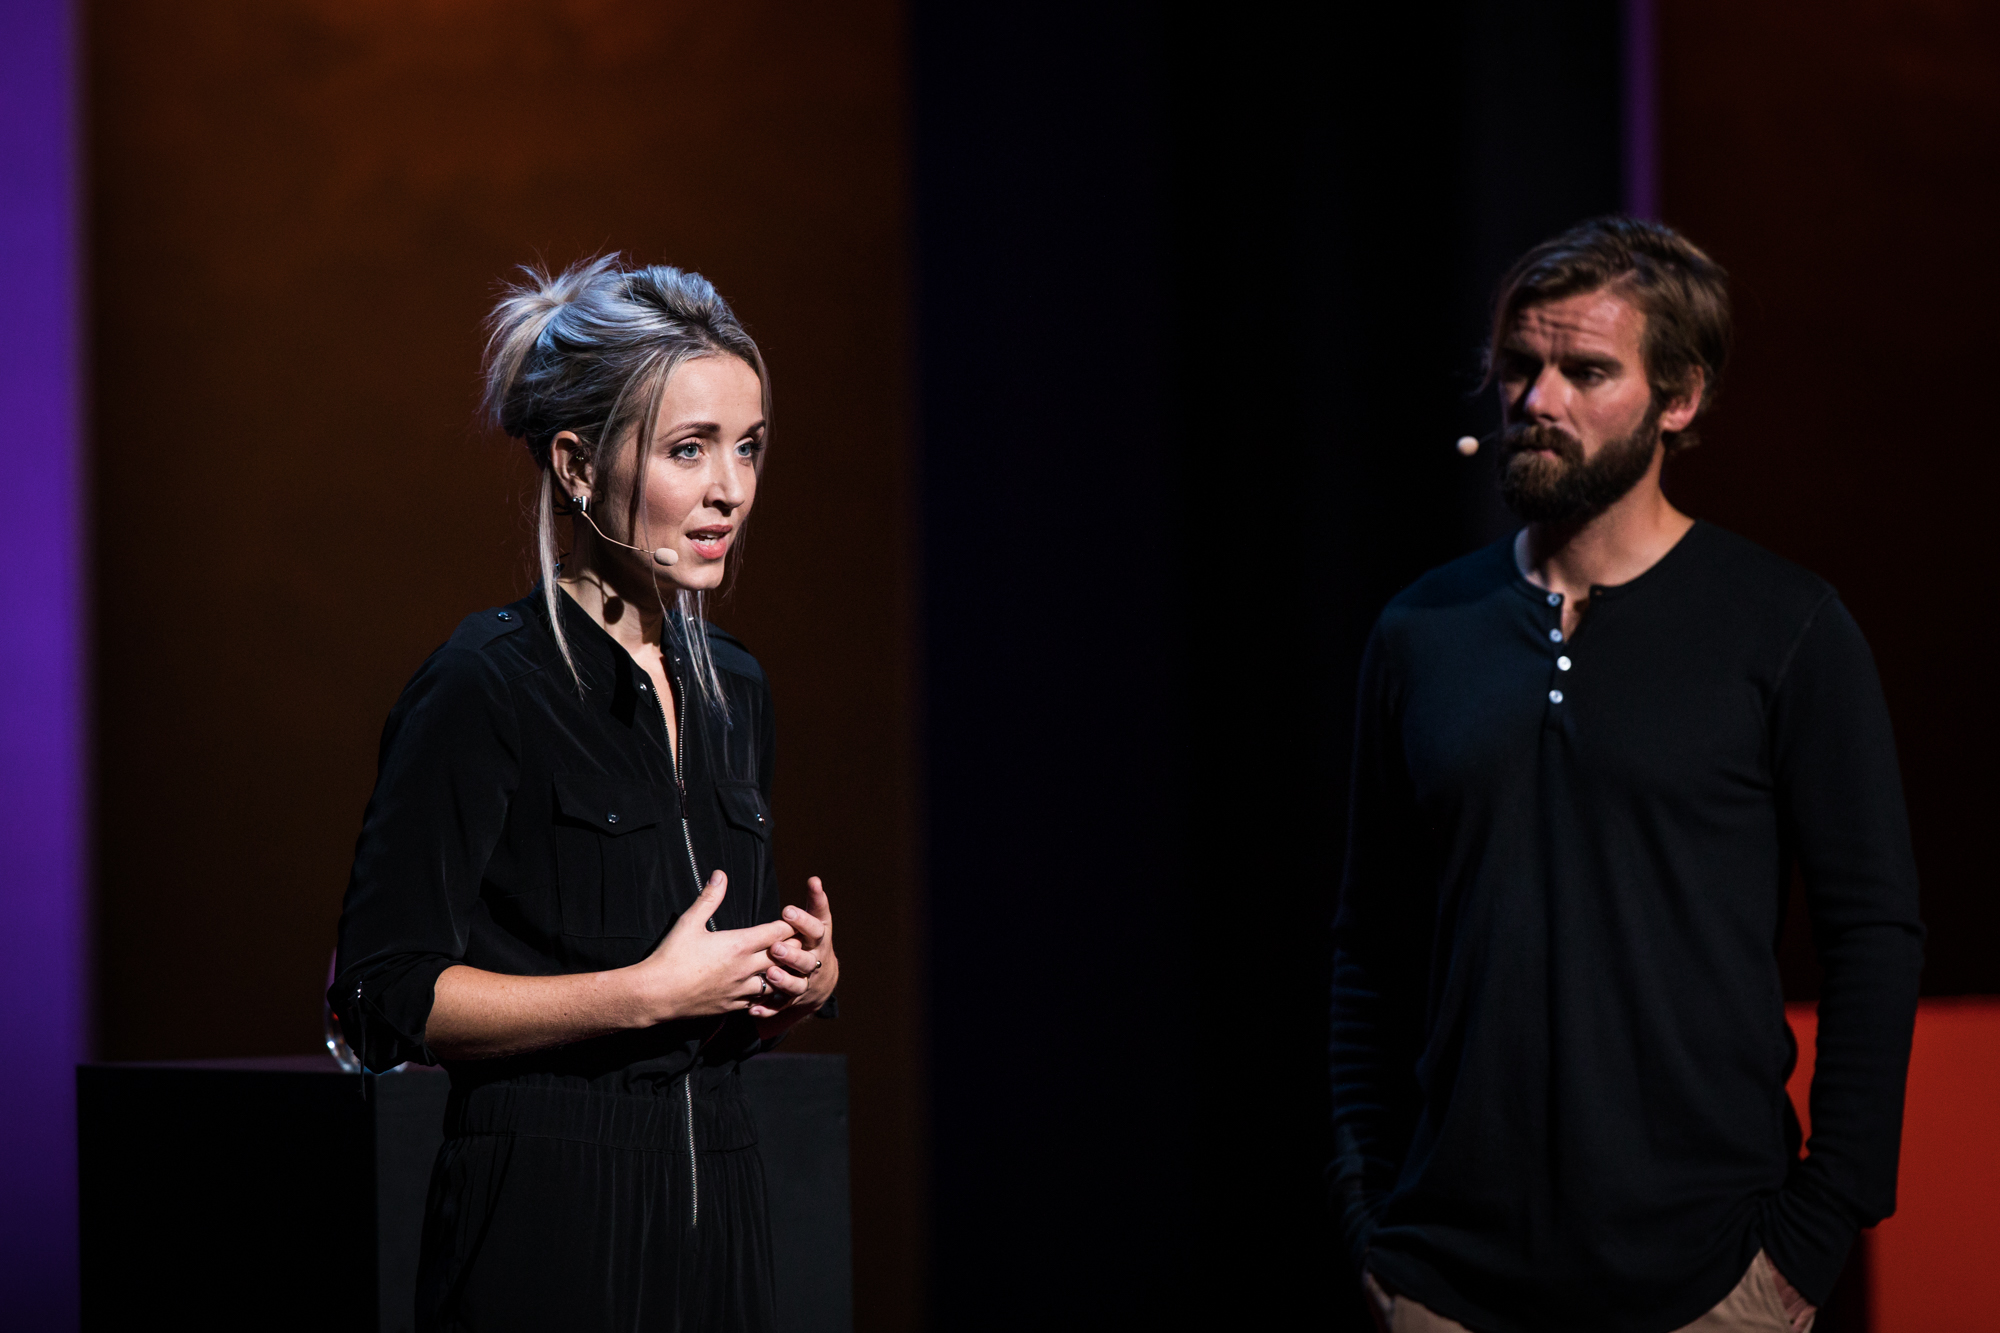 Thordis Elva and Tom Stranger at TEDWomen 2016 - It's About Time, October 26-28, 2016, Yerba Buena Centre for the Arts, San Francisco, California. Photo: Marla Aufmuth / TED